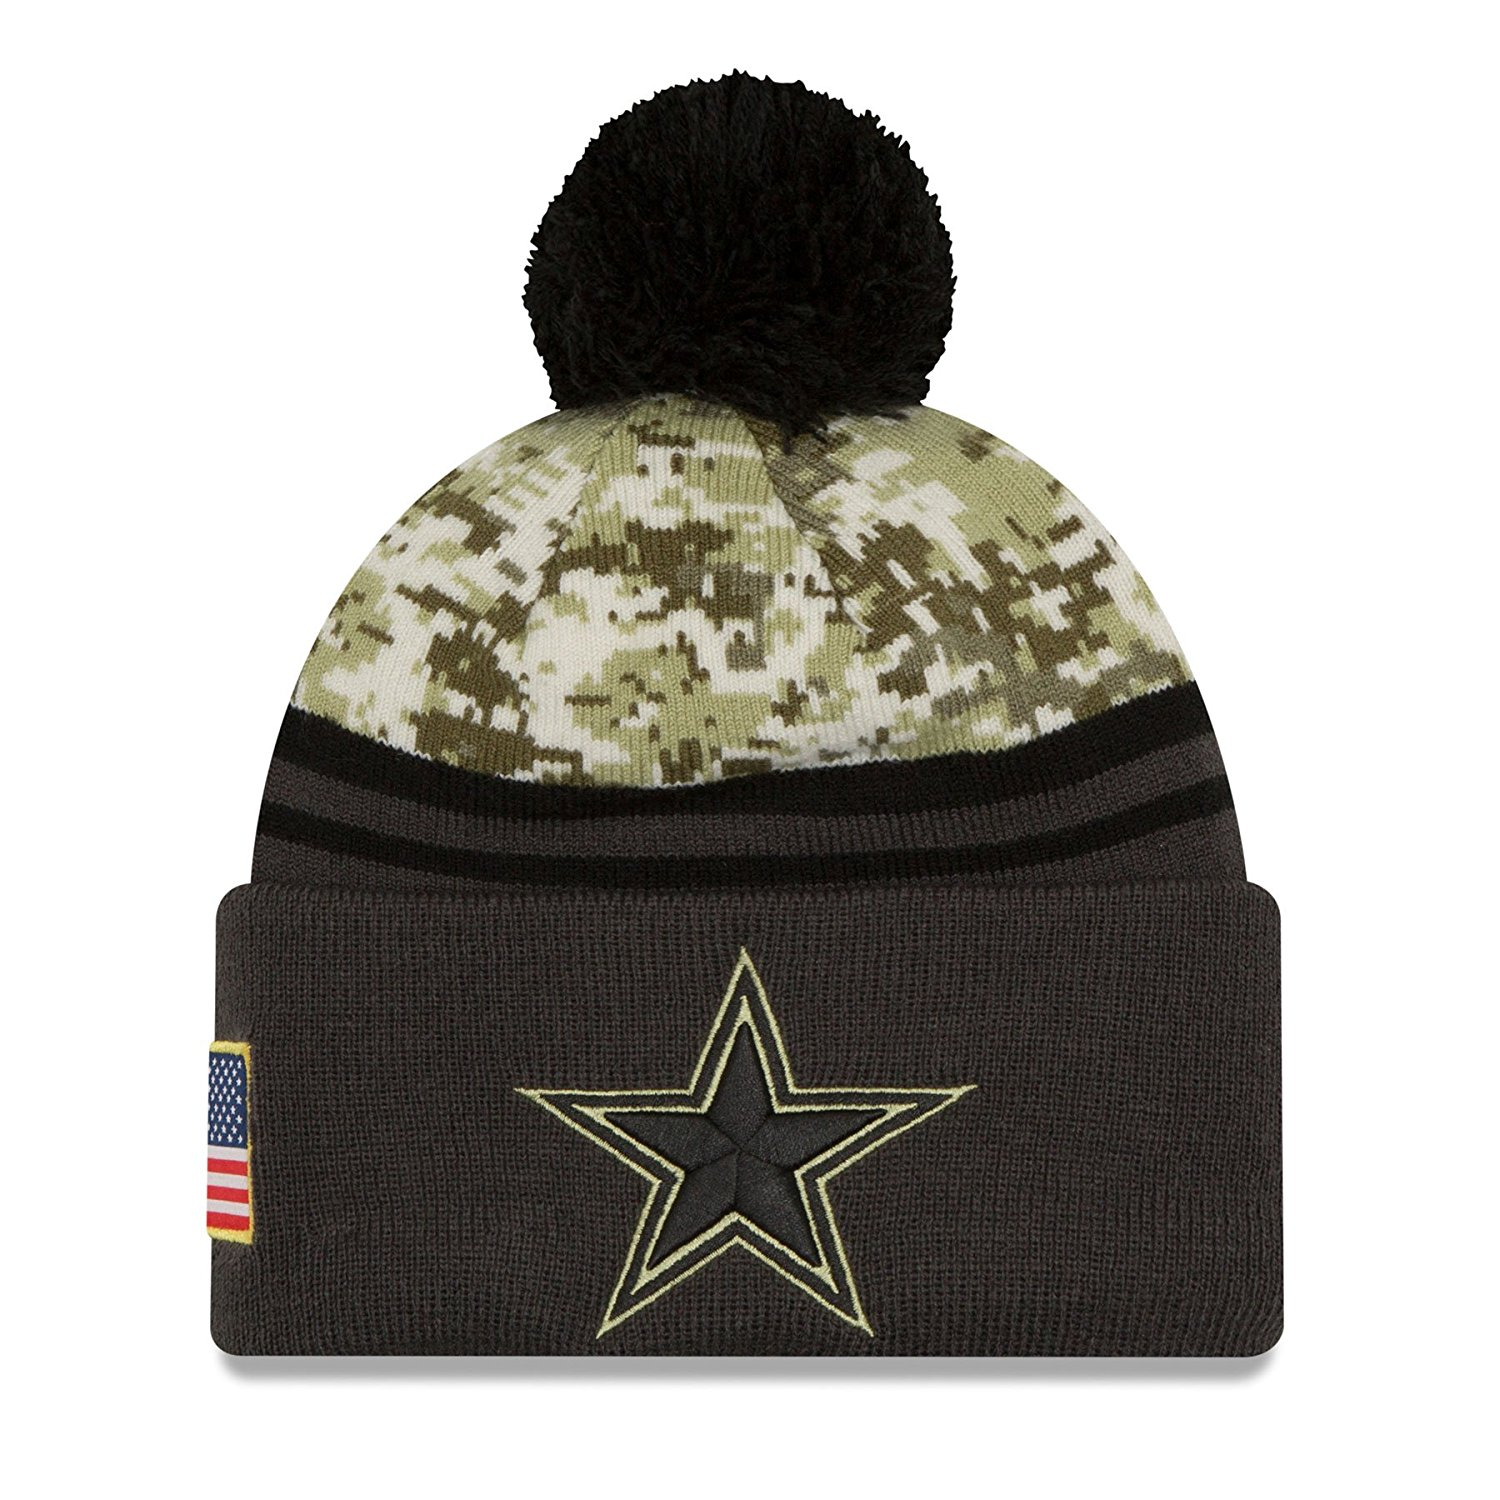 Get Quotations · Dallas Cowboys New Era 2016 NFL Salute To Service Pom Knit  Hat (One-Size a7817d873